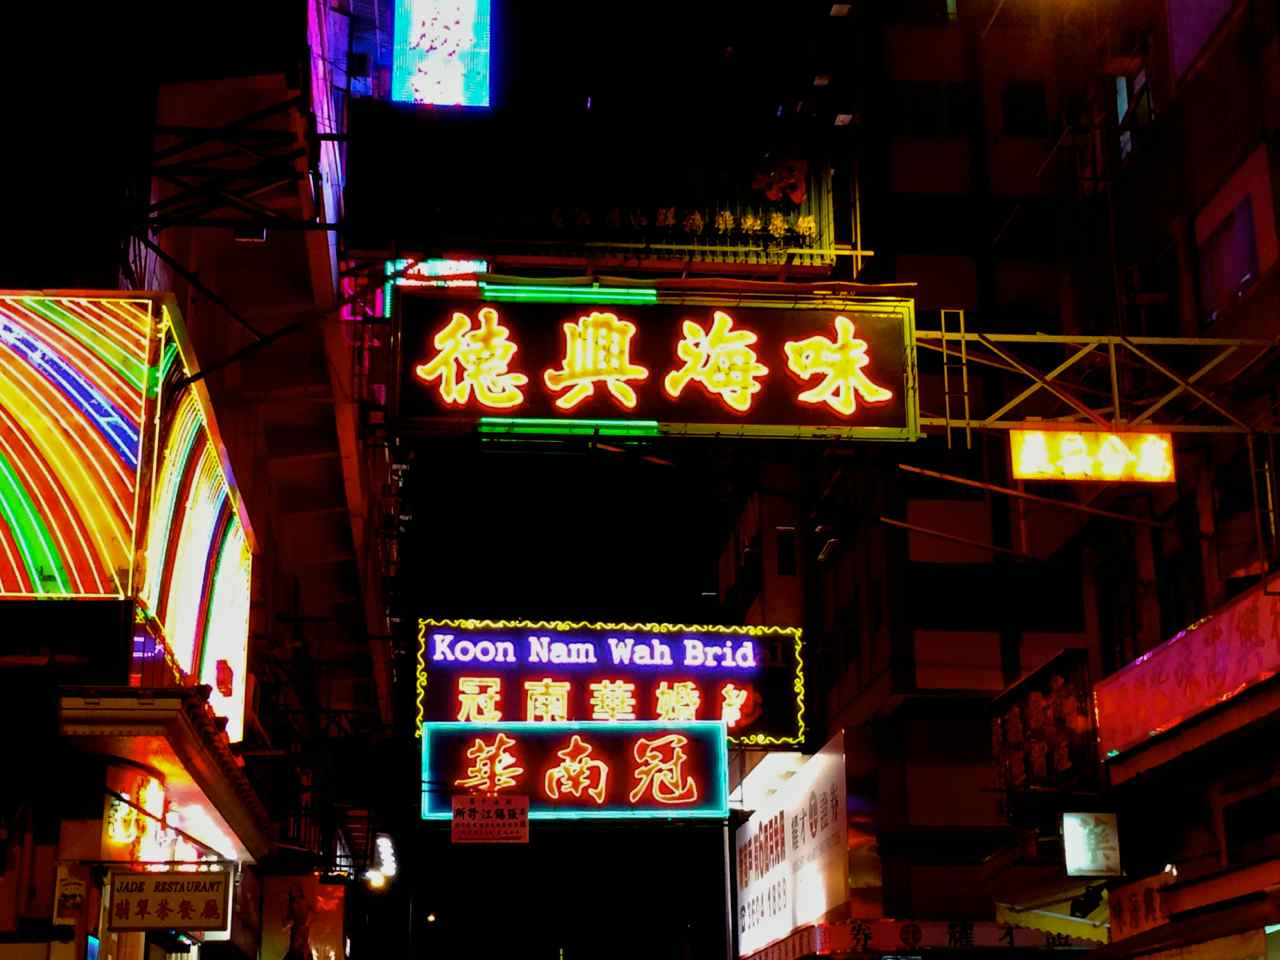 Neon Signs Hong Kong | www.rtwgirl.com